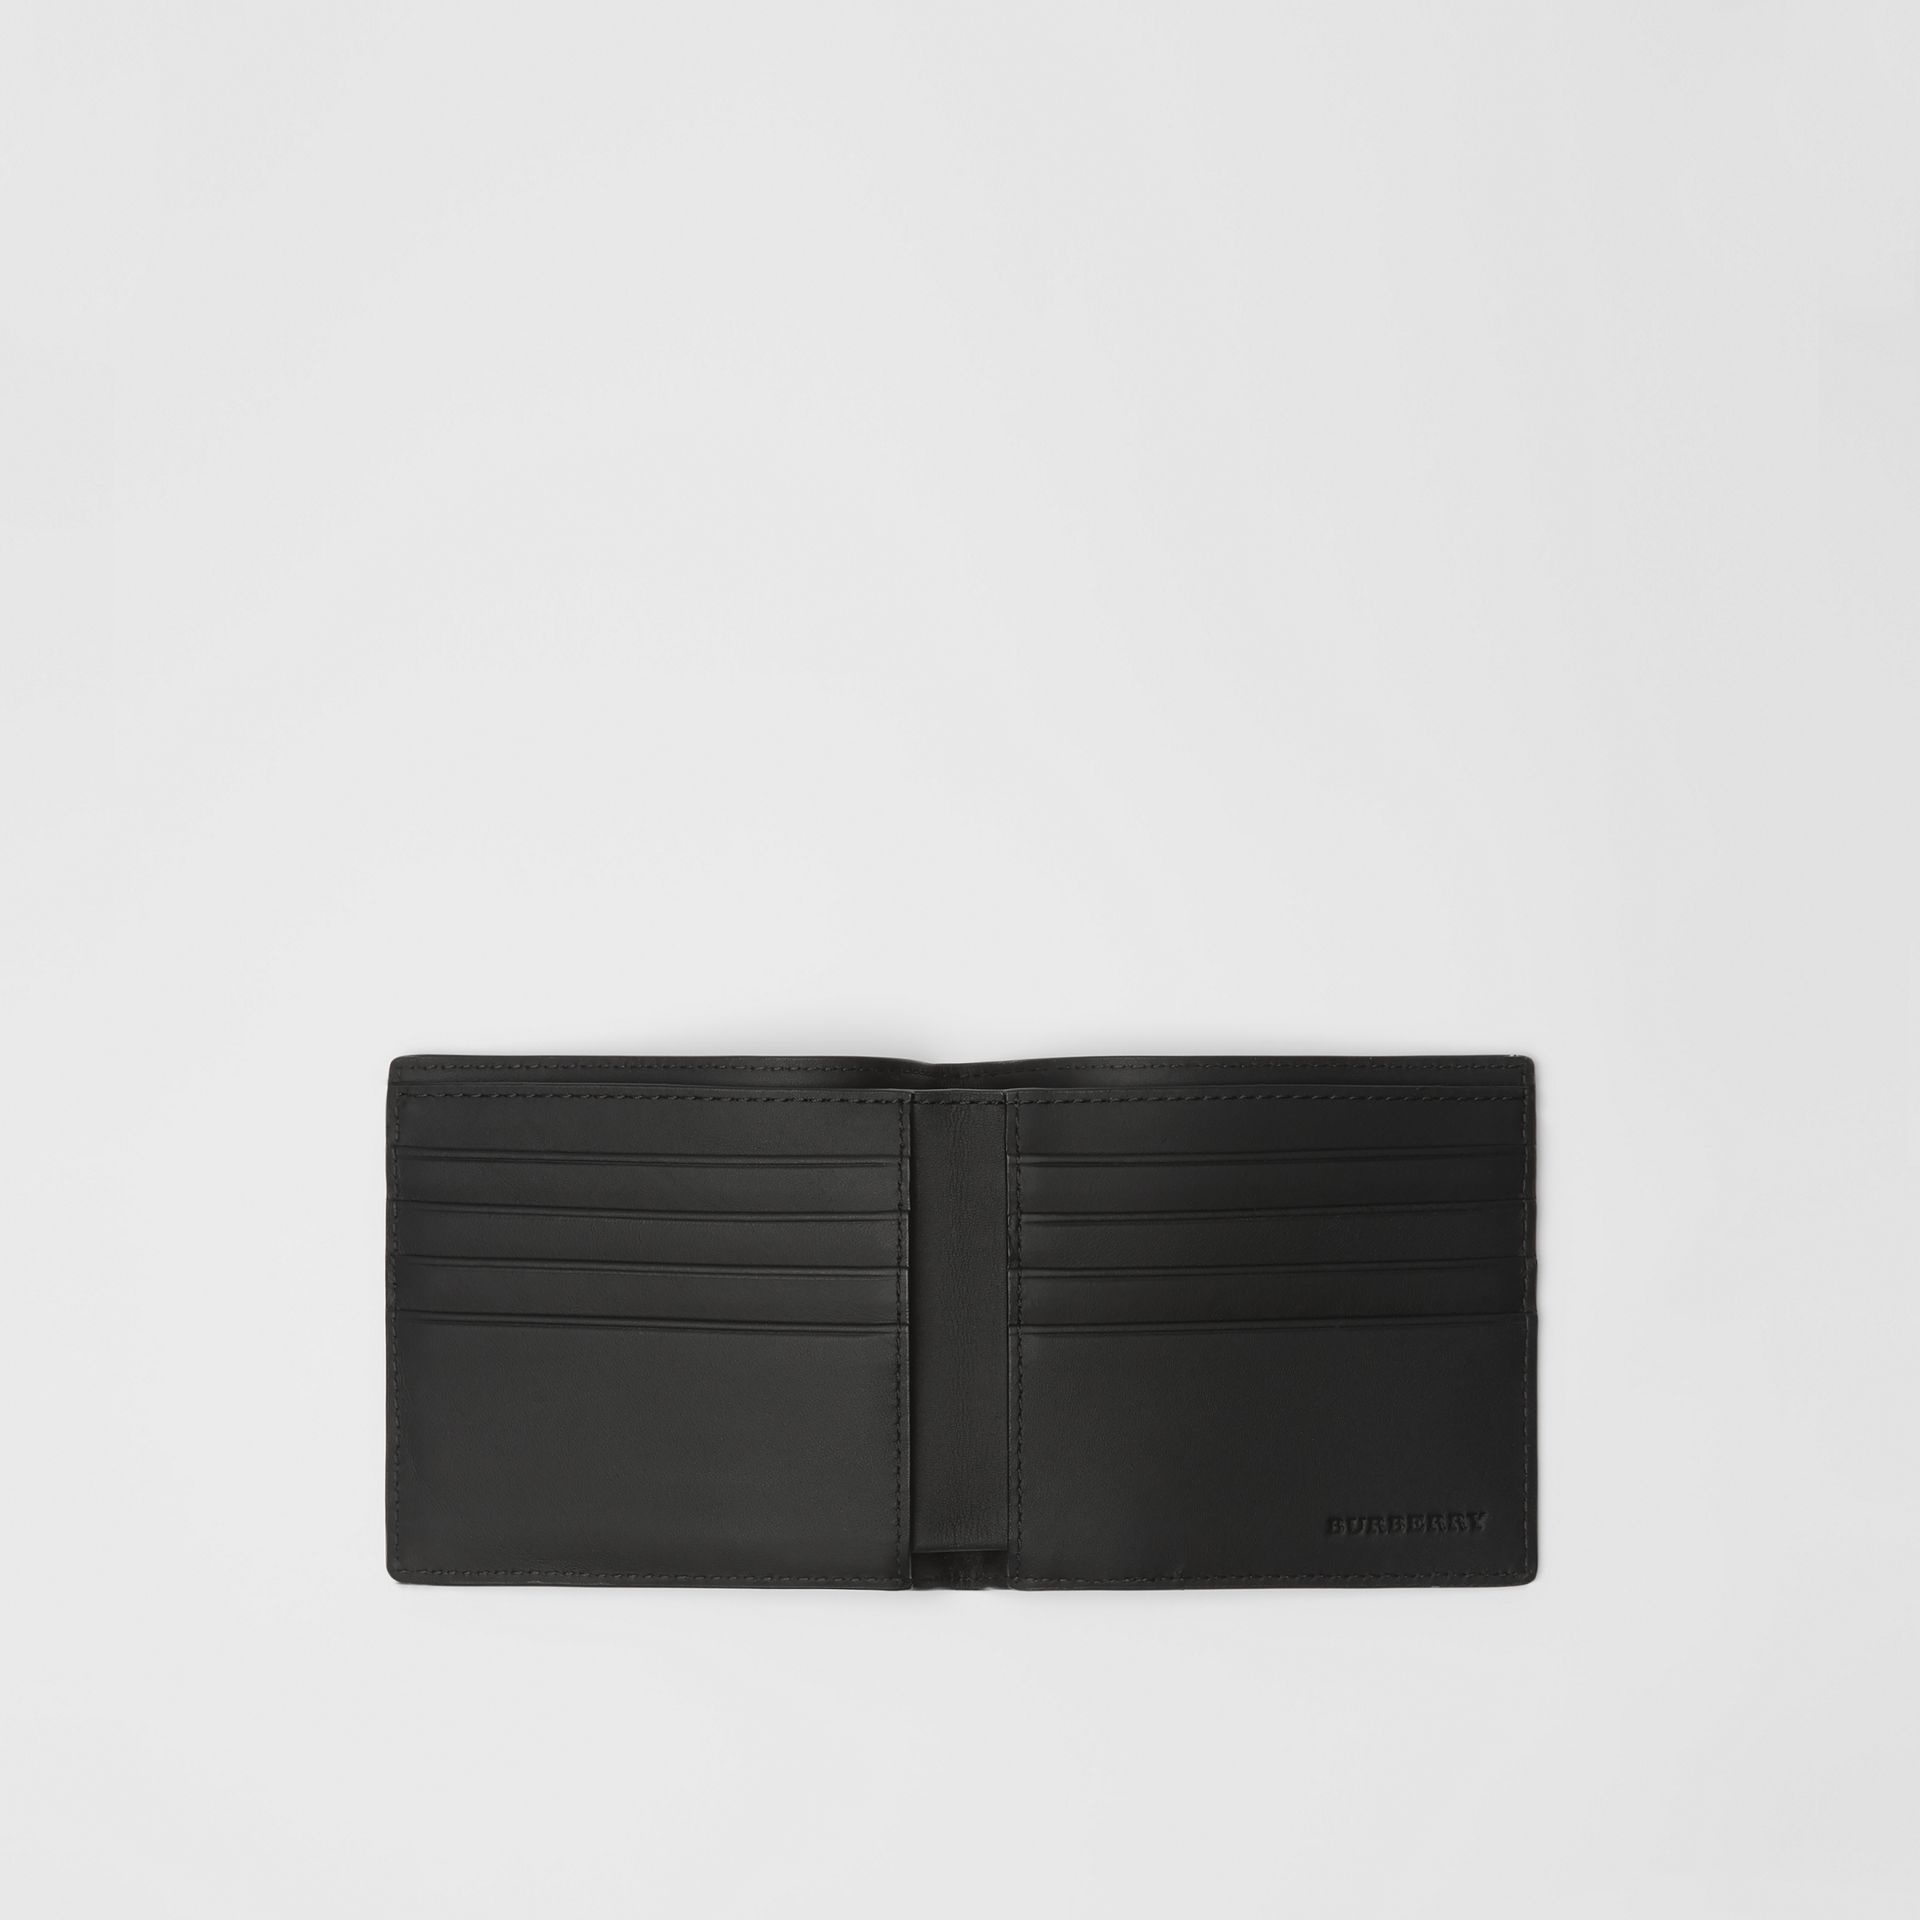 EKD London Check International Bifold Wallet in Charcoal/black - Men | Burberry - gallery image 2